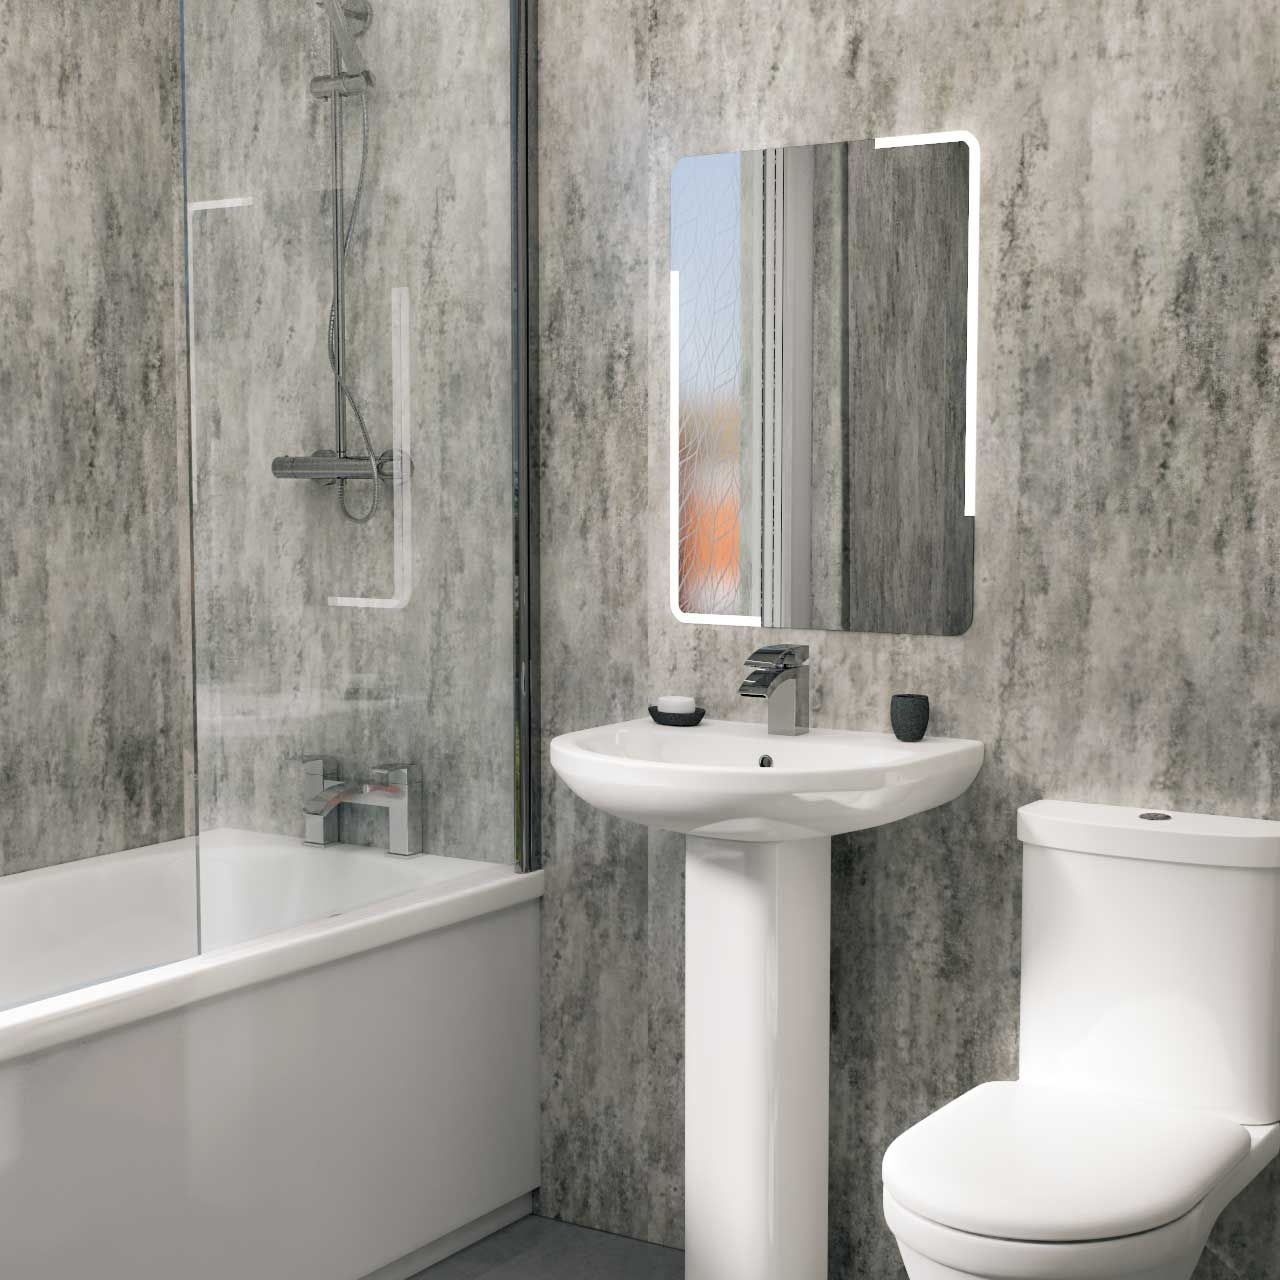 A Textured Metallic Finish Adds An Extra Element Of Style Use Our Silver Retro Metallic Wall Panel T Bathroom Wall Panels Wall Paneling Bathroom Shower Walls